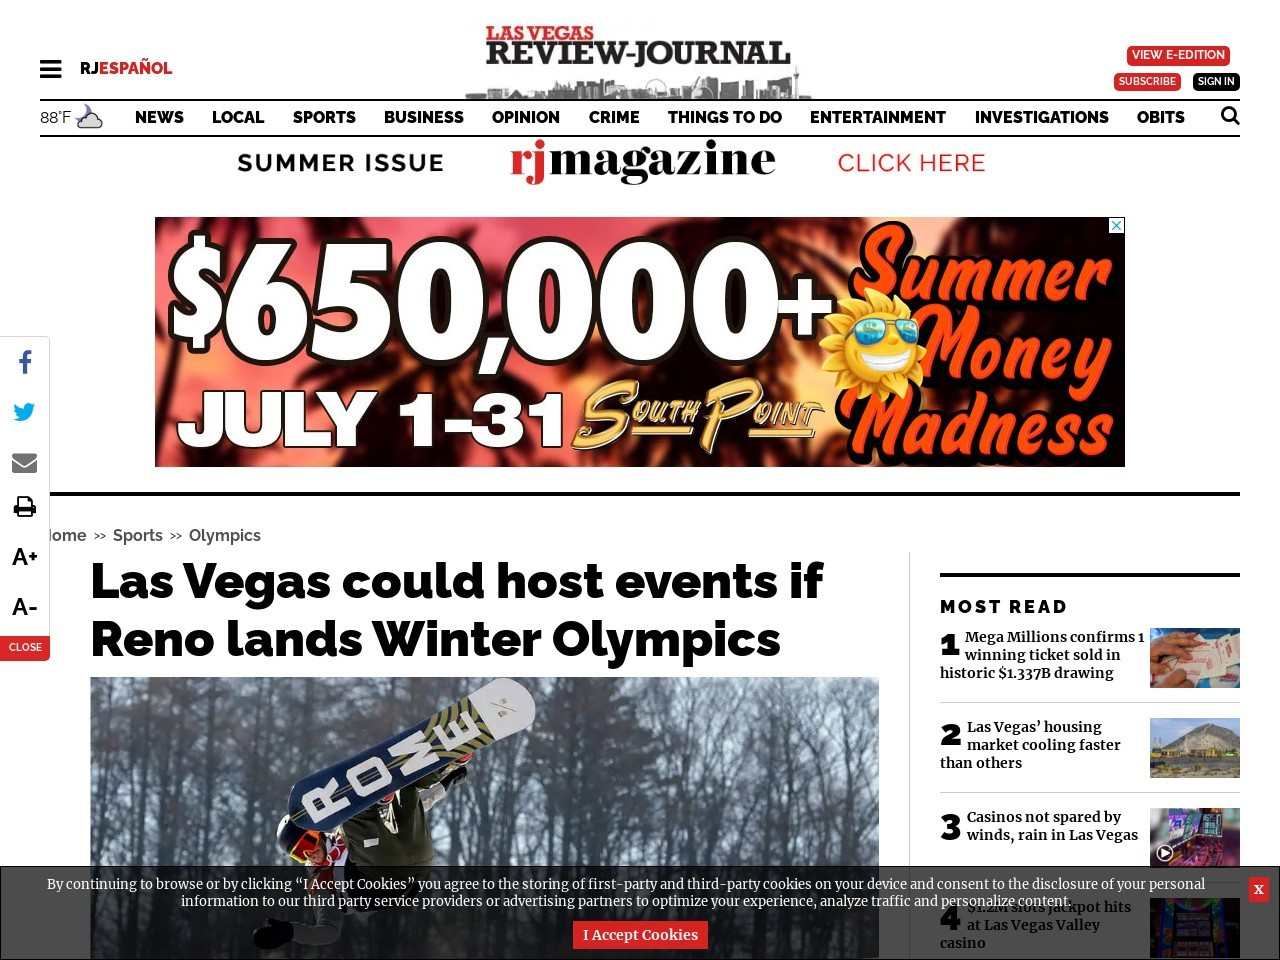 Las Vegas could host events if Reno lands Winter Olympics